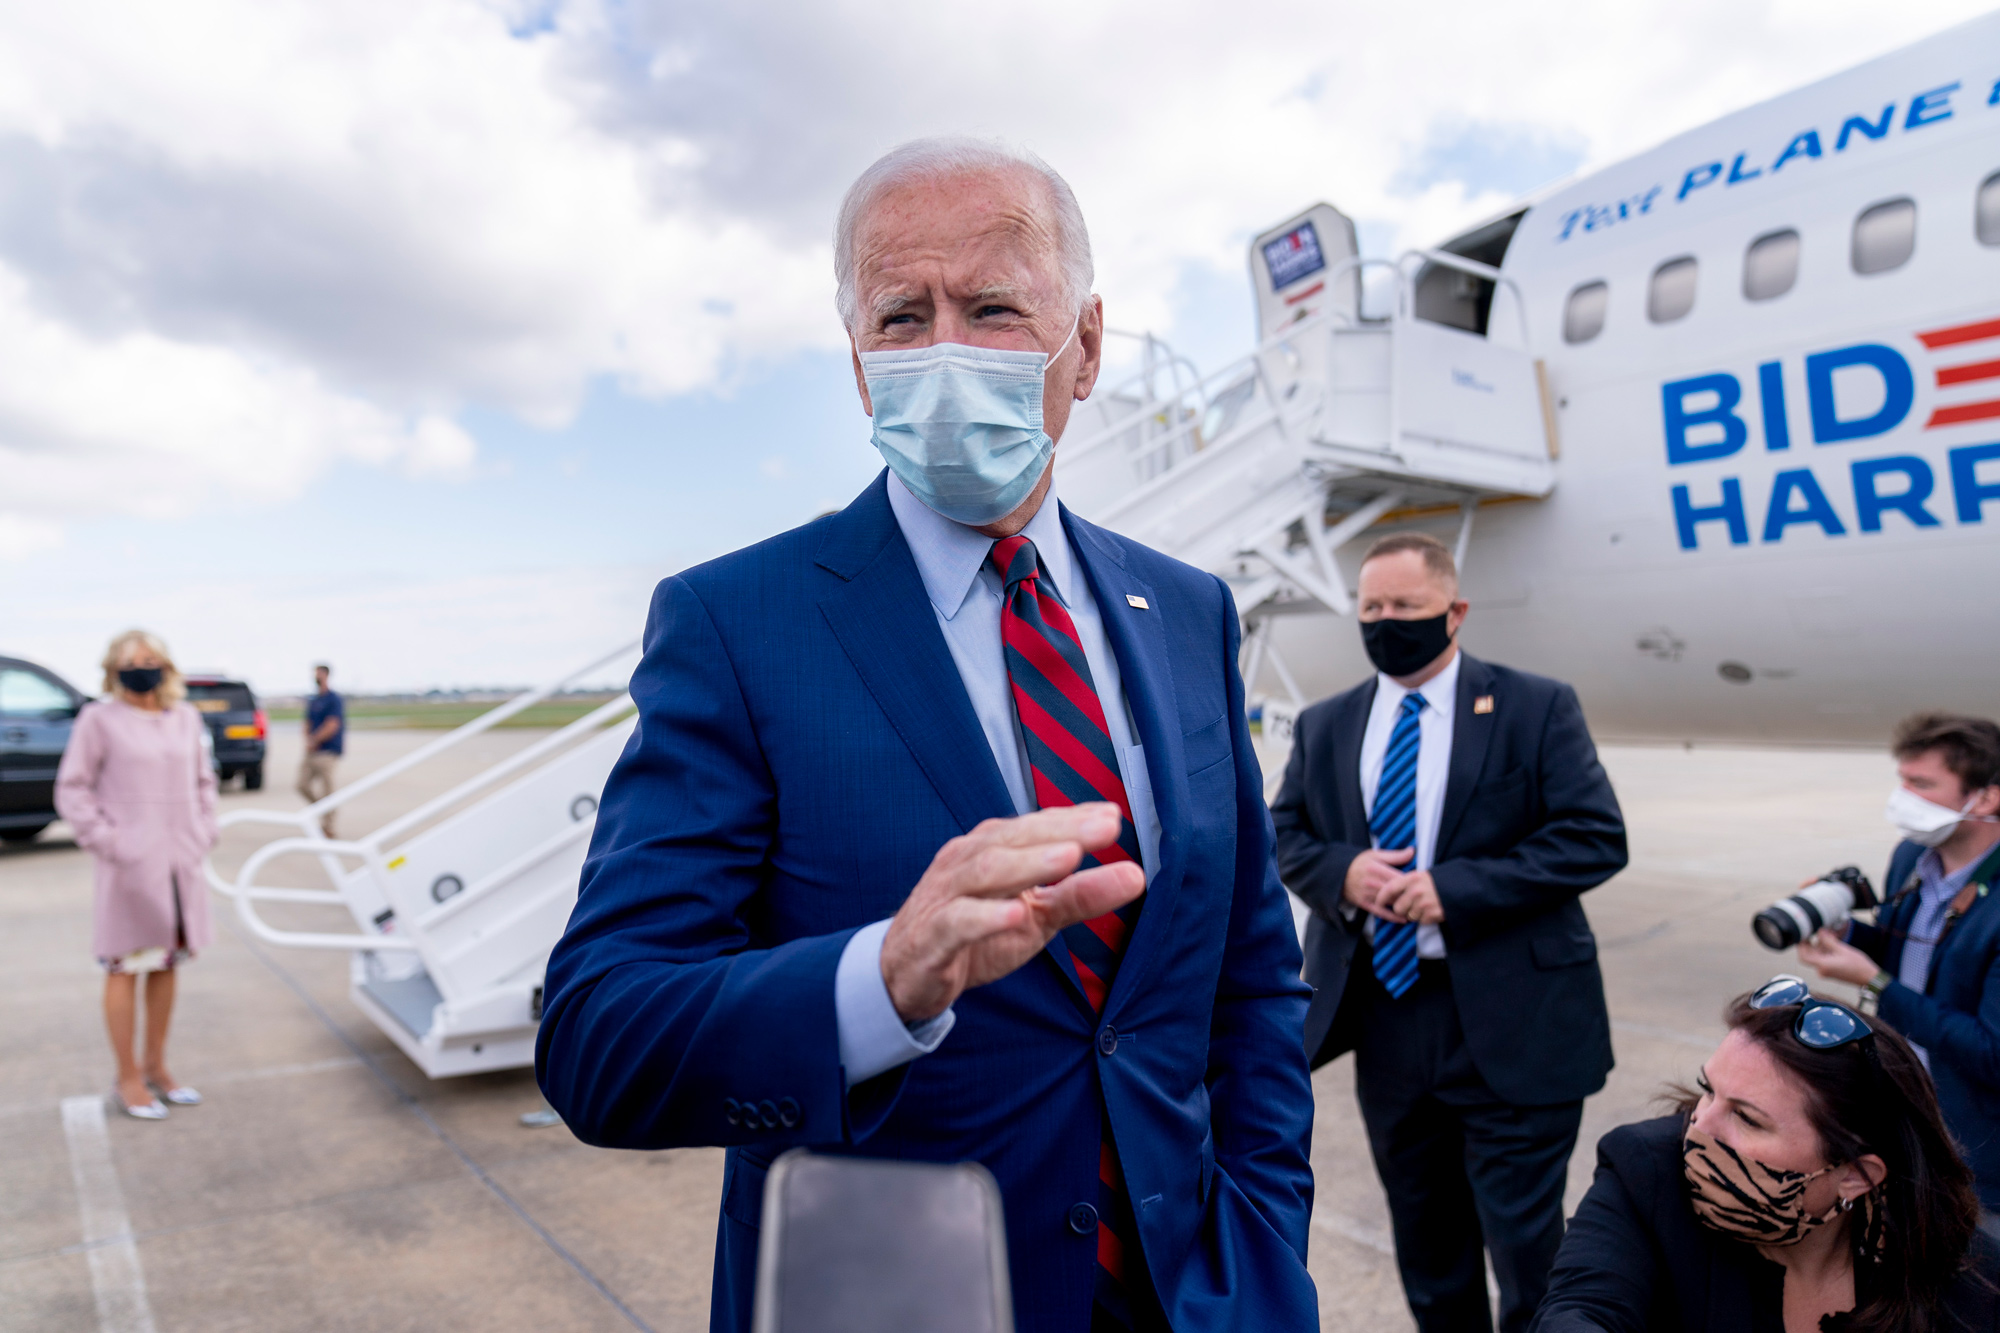 Democratic presidential candidate Joe Biden speaks to members of the media before boarding his campaign plane at New Castle Airport in New Castle, Delaware, on October 5.